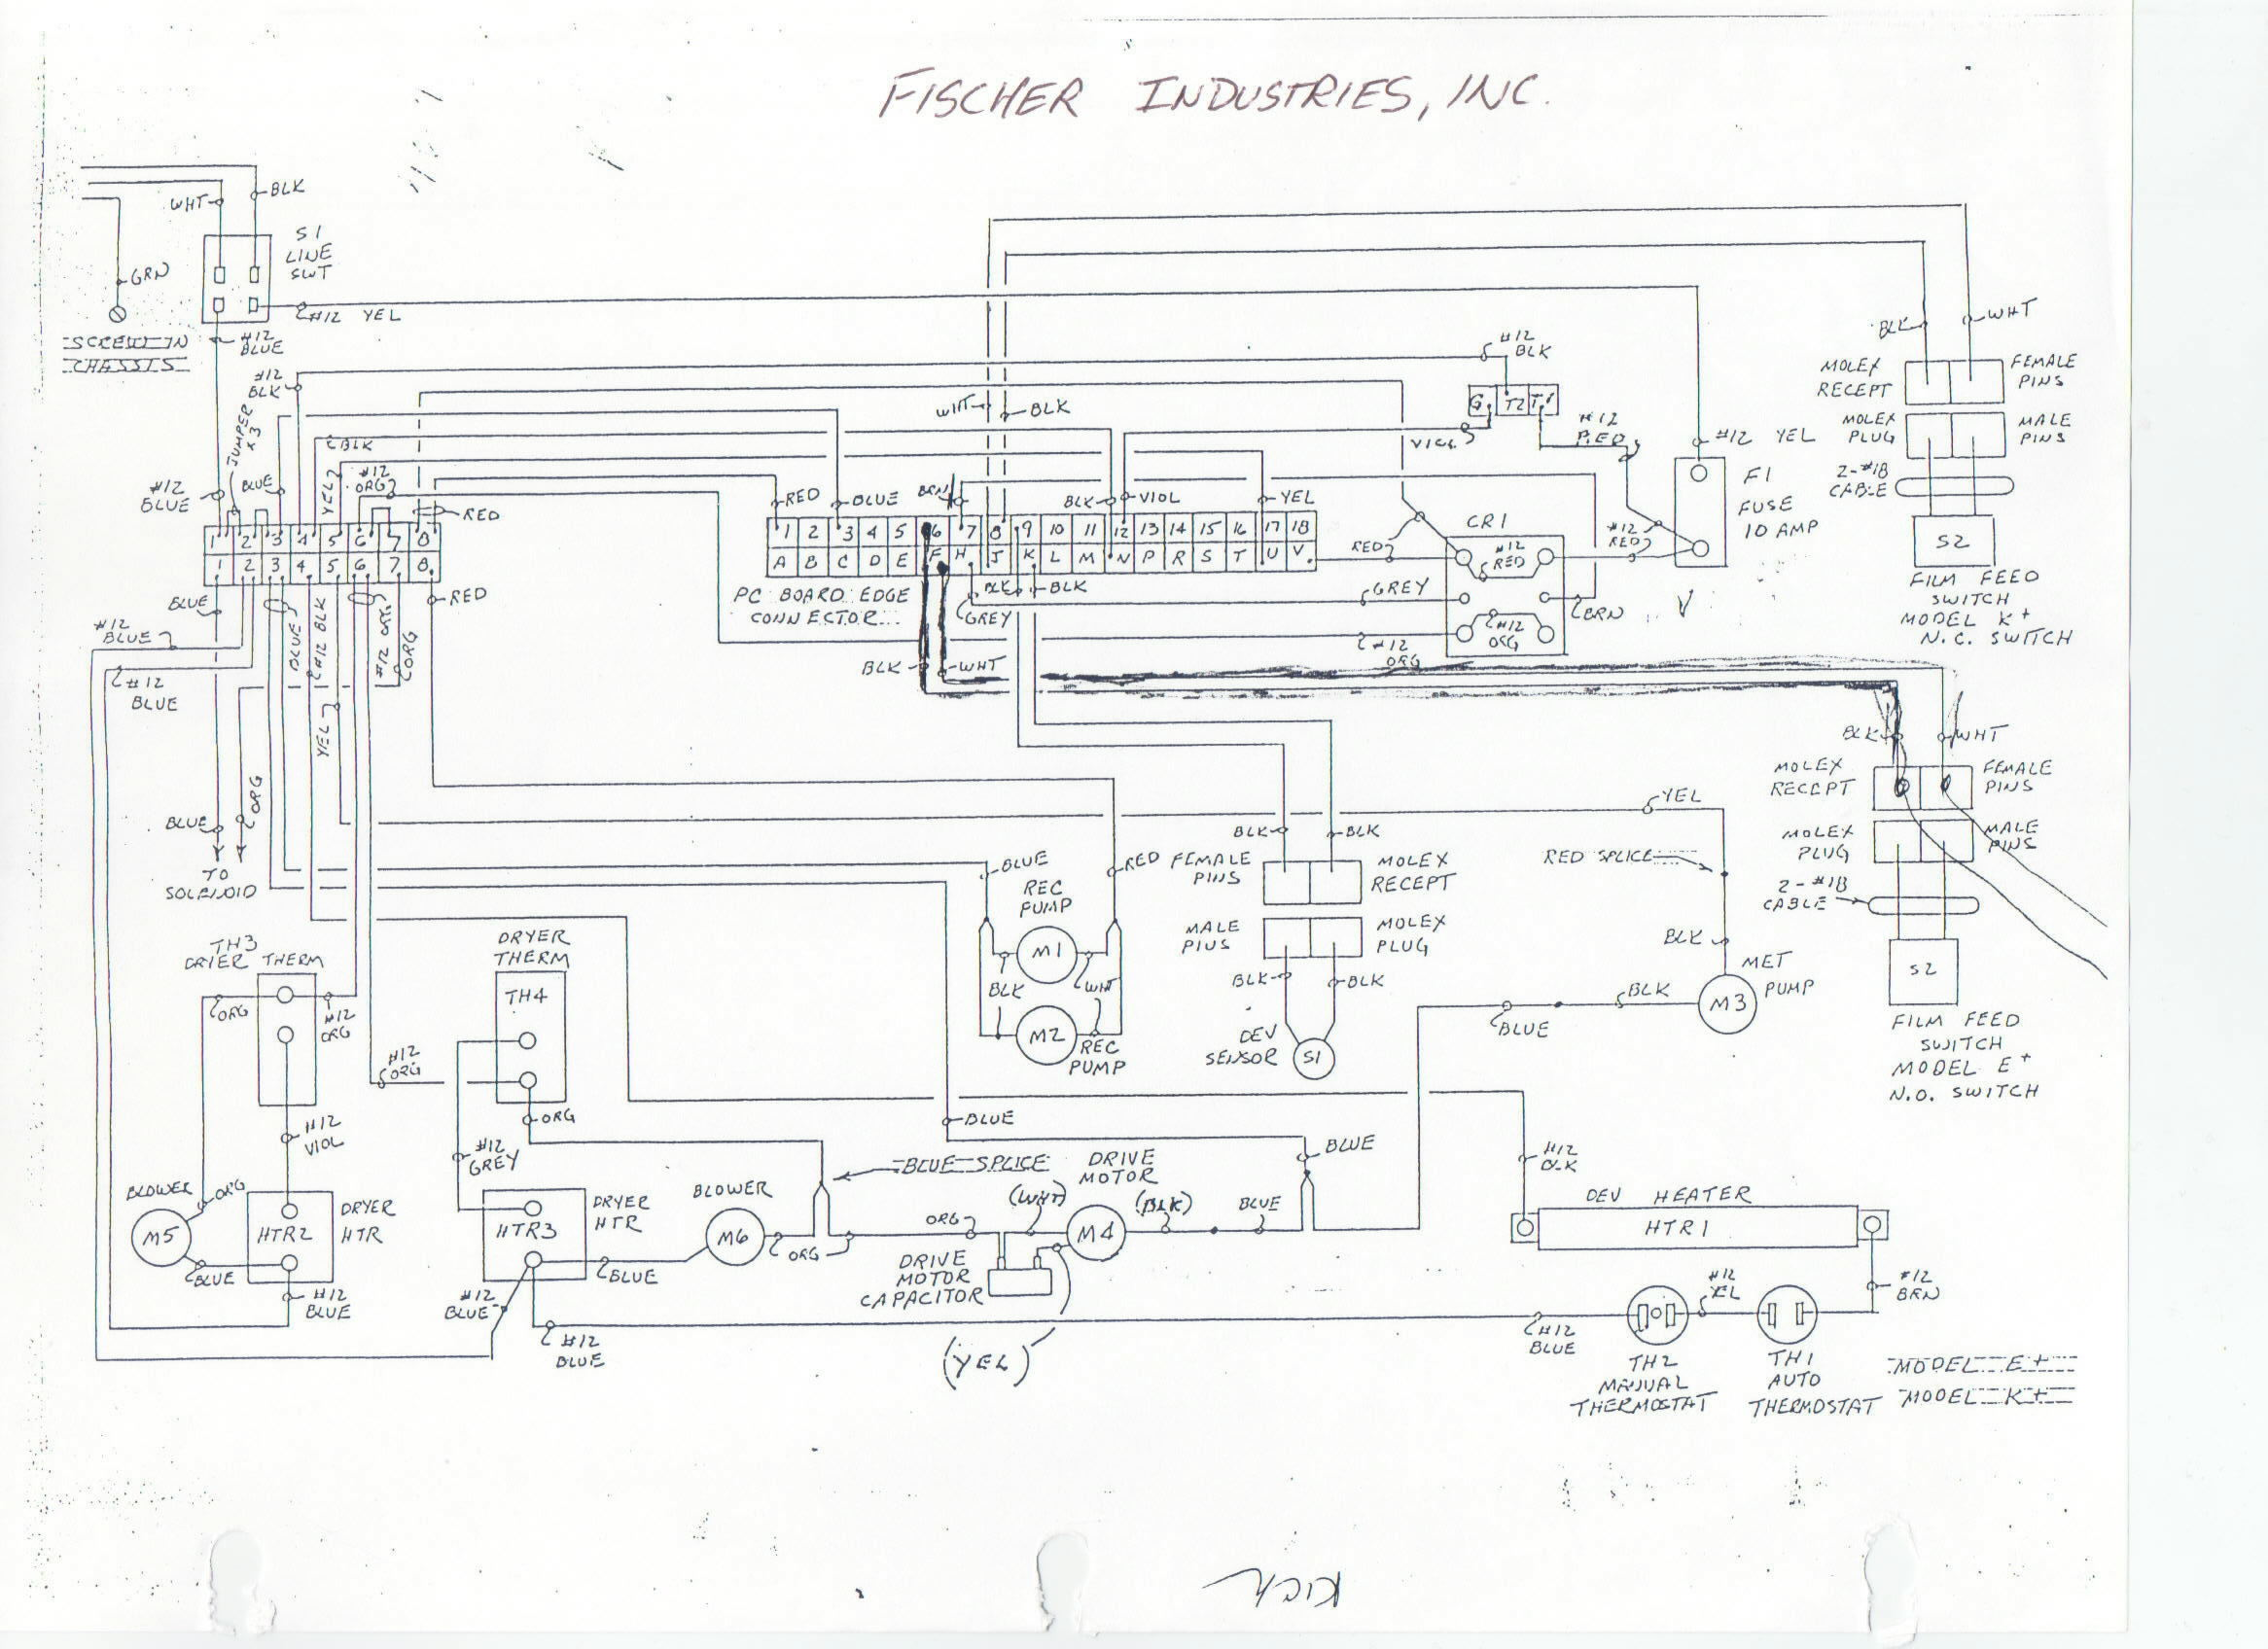 Wiring Diagram Kodak And Schematics Dc215 Serial Cable Diagramgif 10 Here For Details On K E